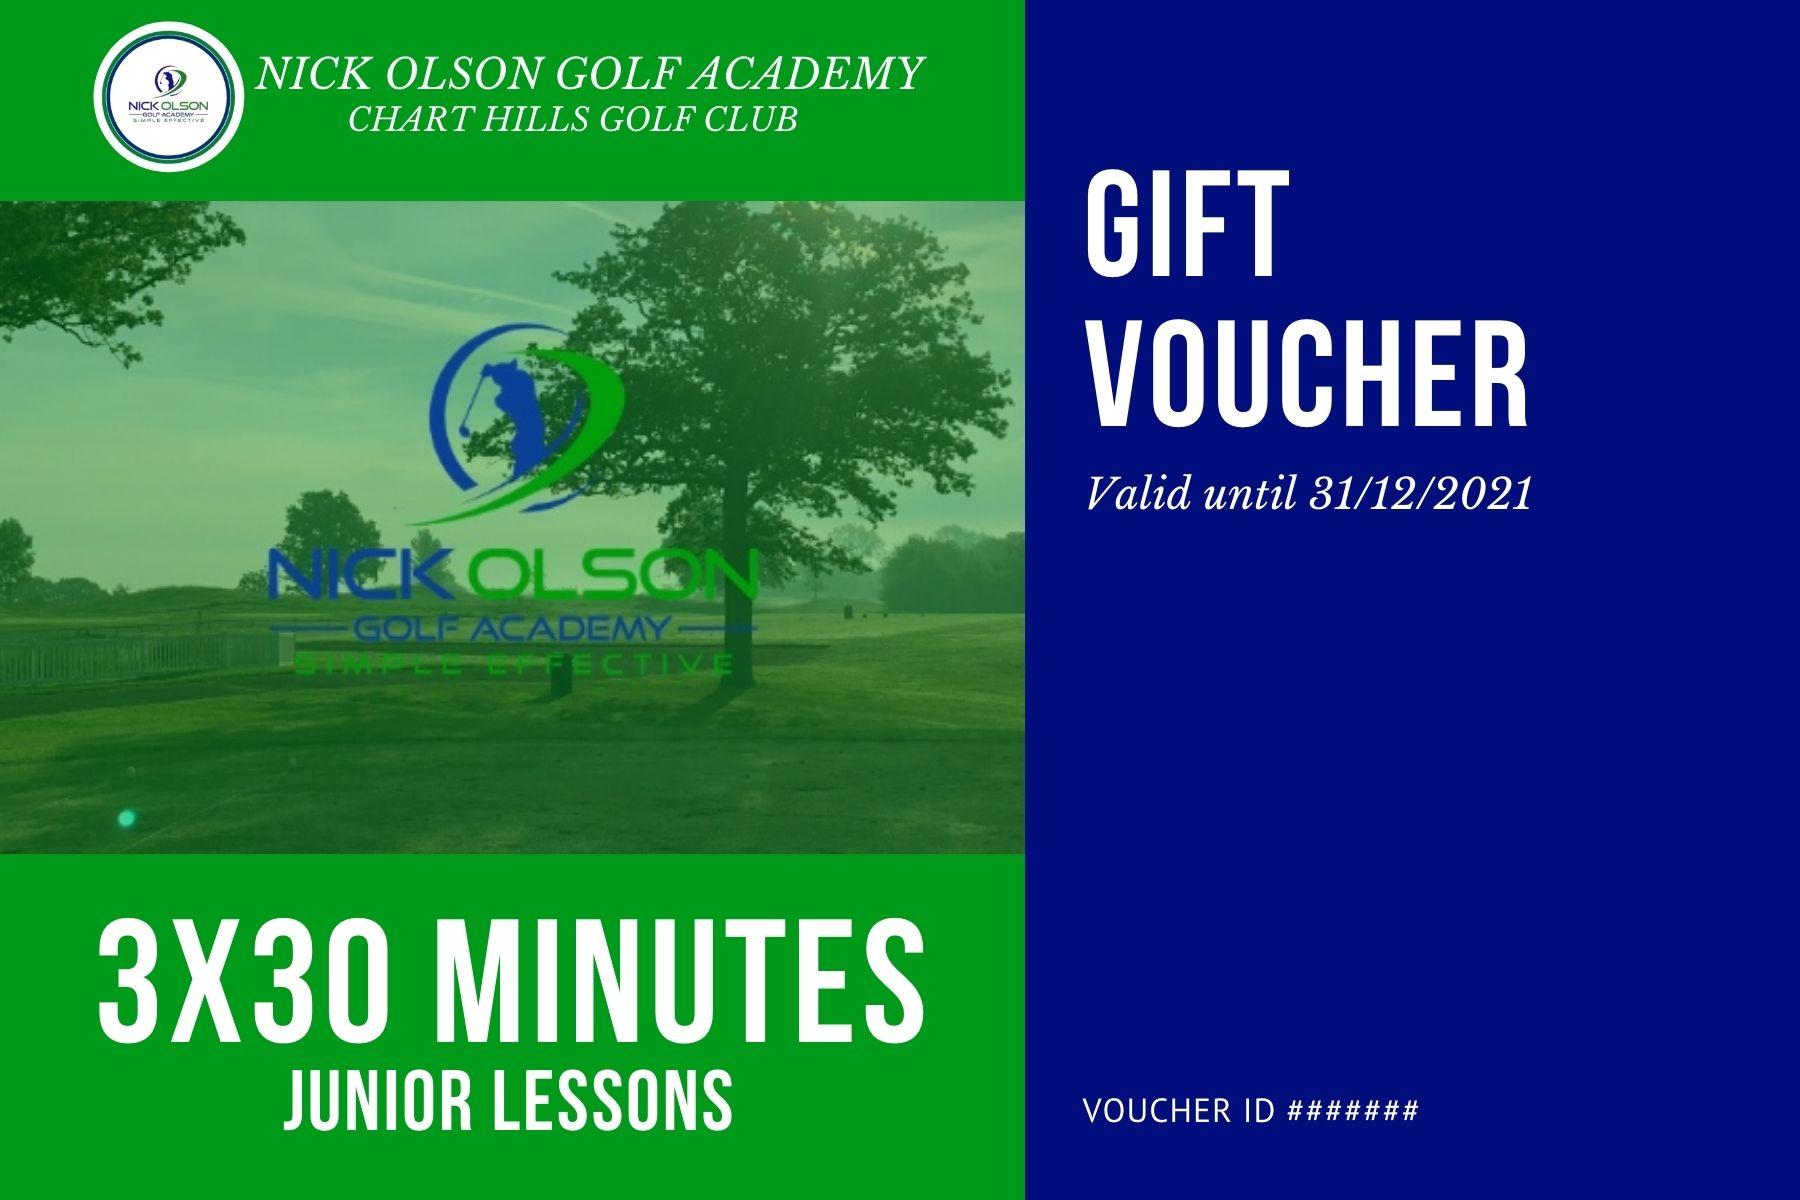 JUNIOR 3x30 MINUTE GOLF LESSONS